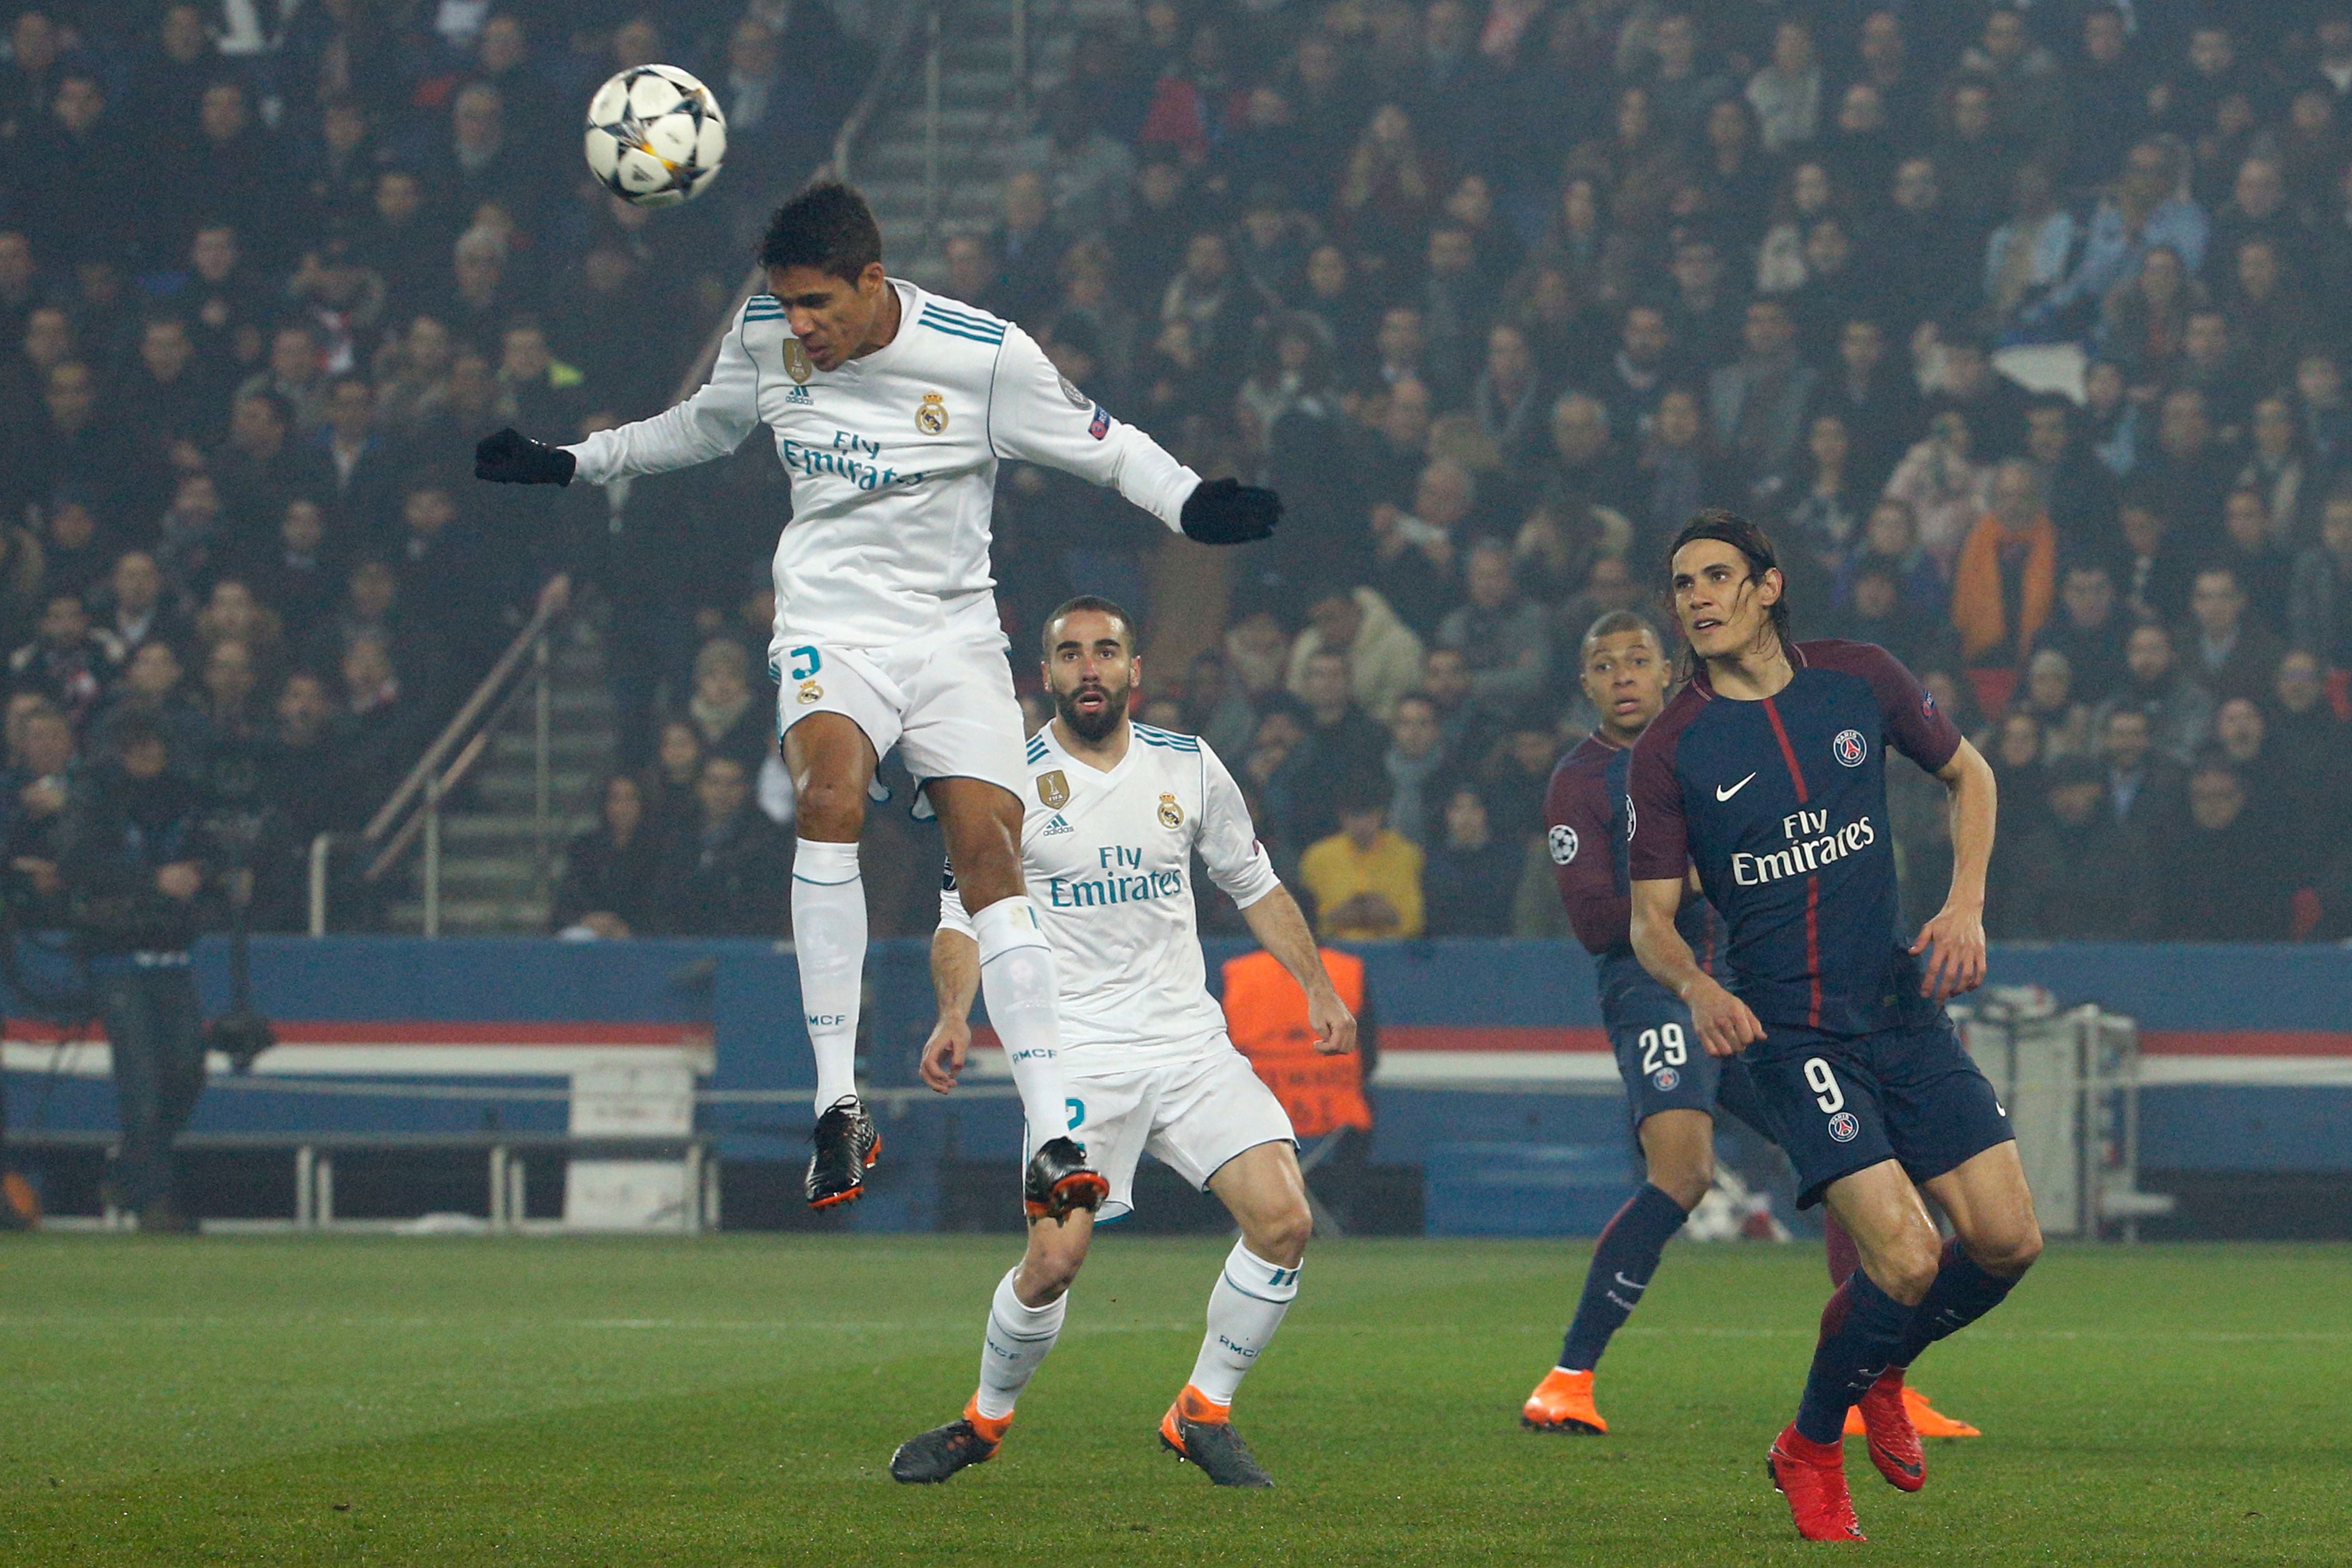 Player Ratings Real Madrid 2: Player Ratings From Real Madrid's 2-1 Victory Over Paris